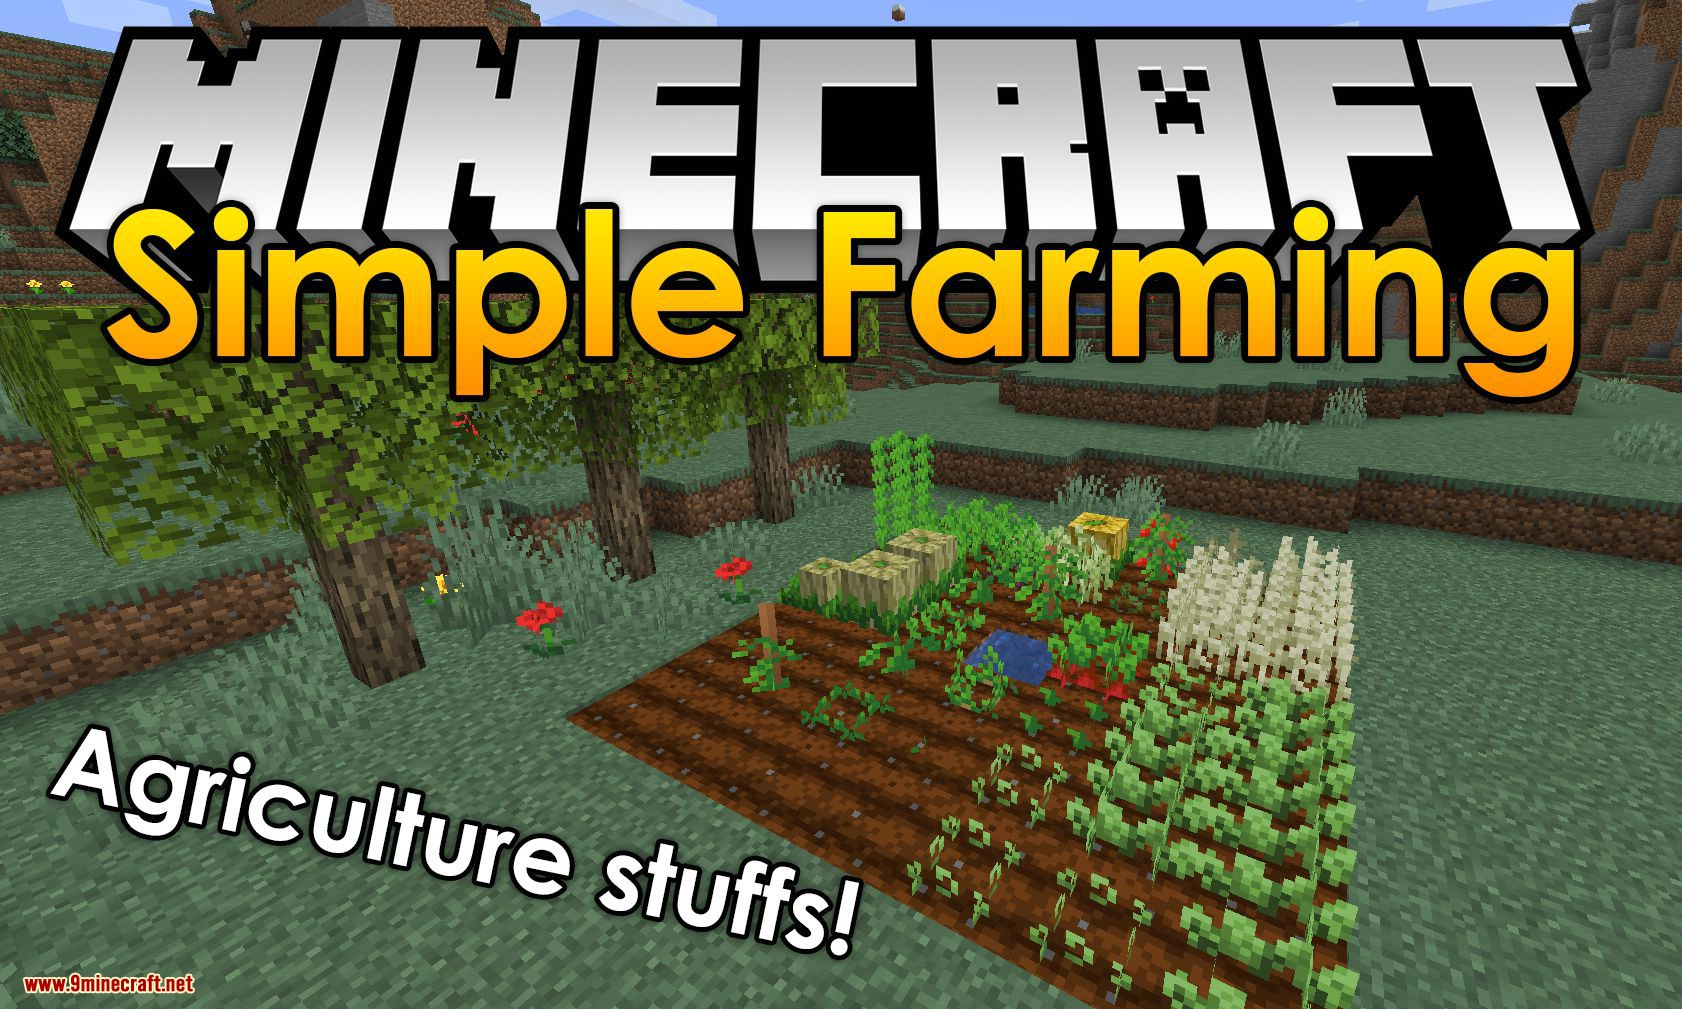 Simple Farming Mod 8.86.8/8.85.8 (More Fruits, Vegetables, and